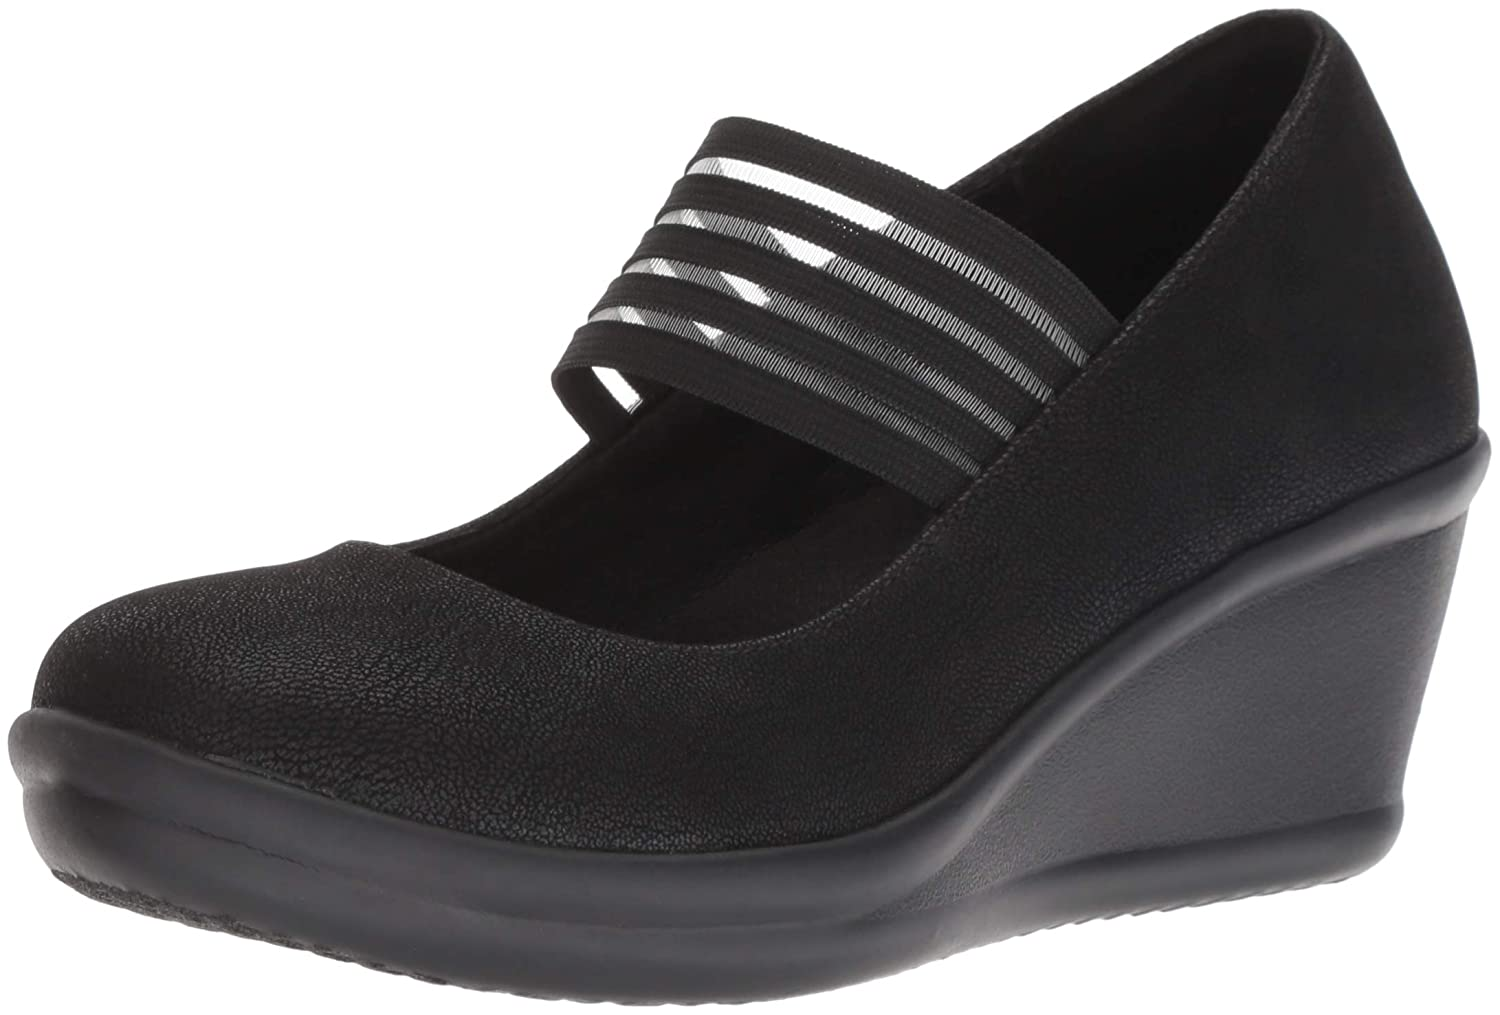 skechers pump shoes